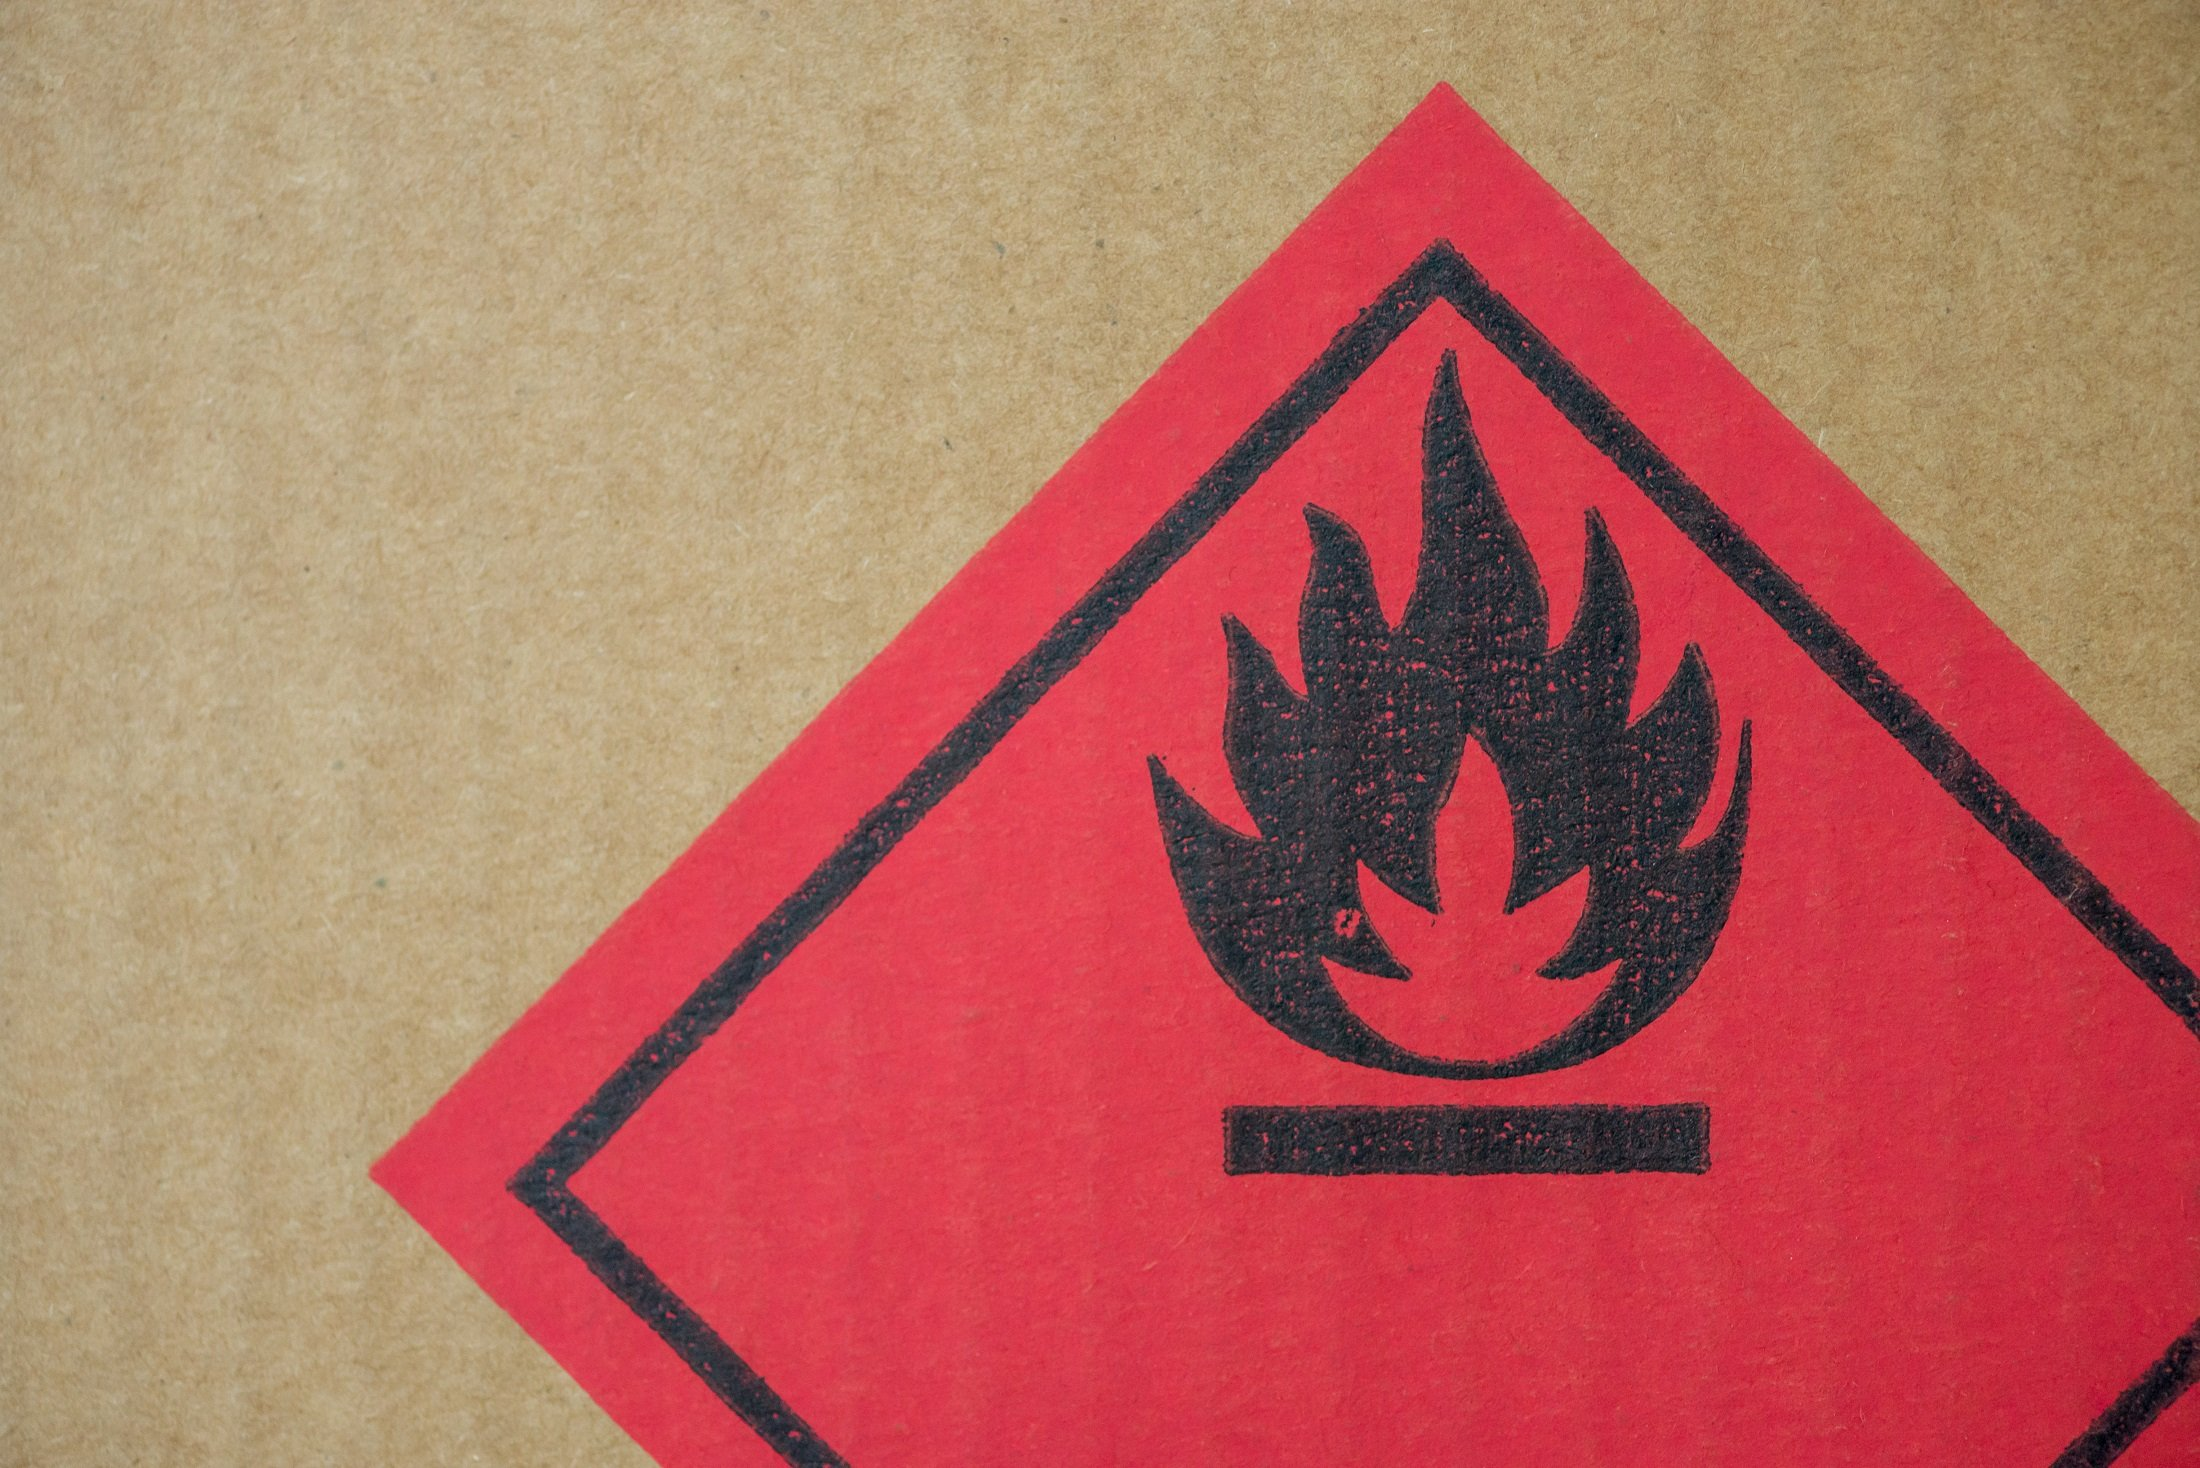 What is the difference between a REGISTER and a MANIFEST of hazardous chemicals